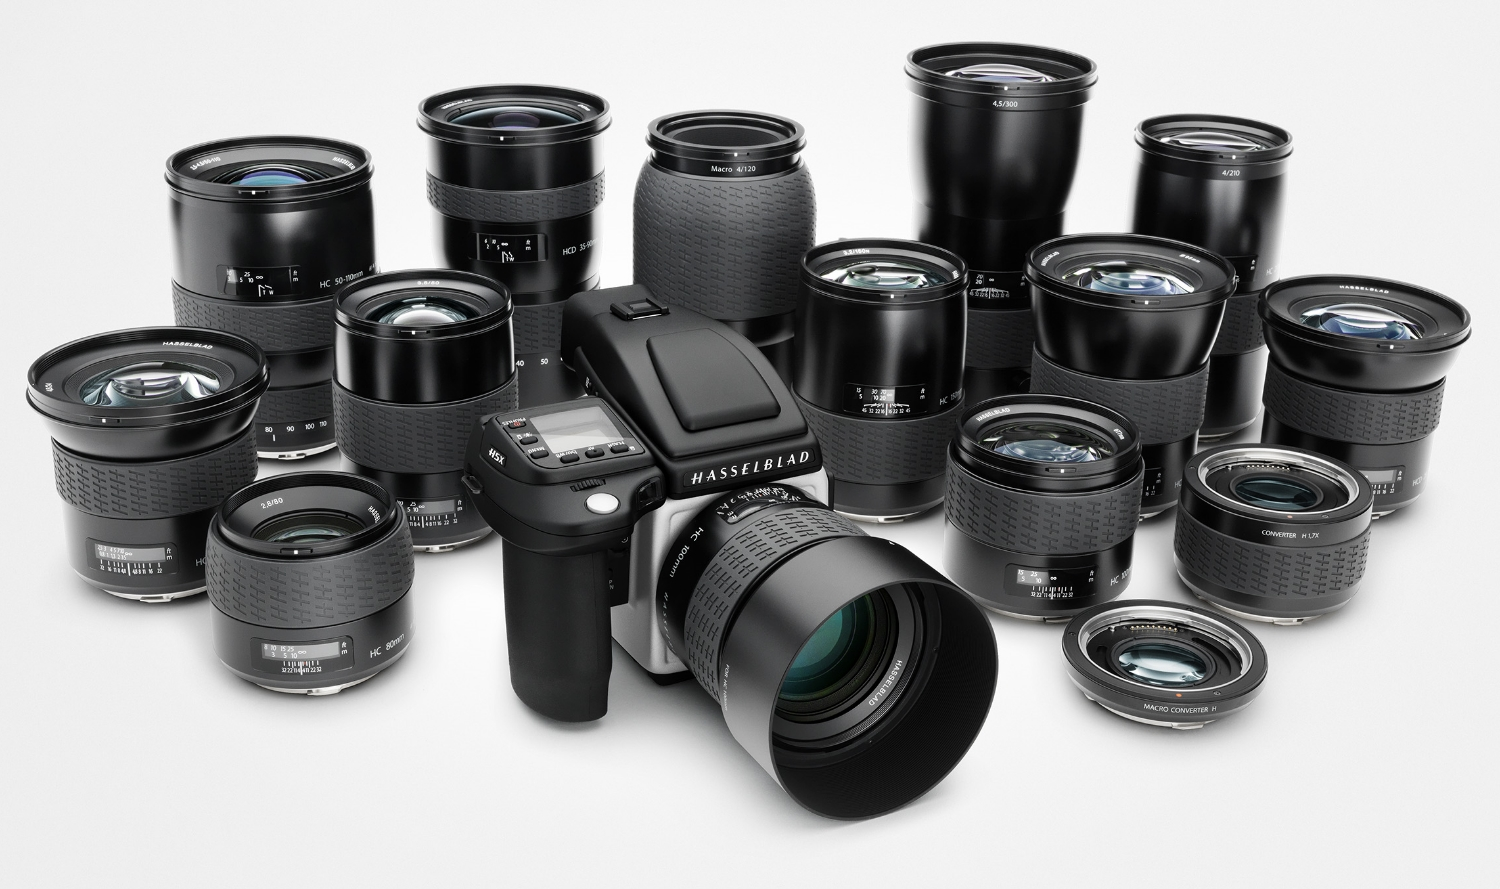 Part of the Hasselblad camera and lens family.